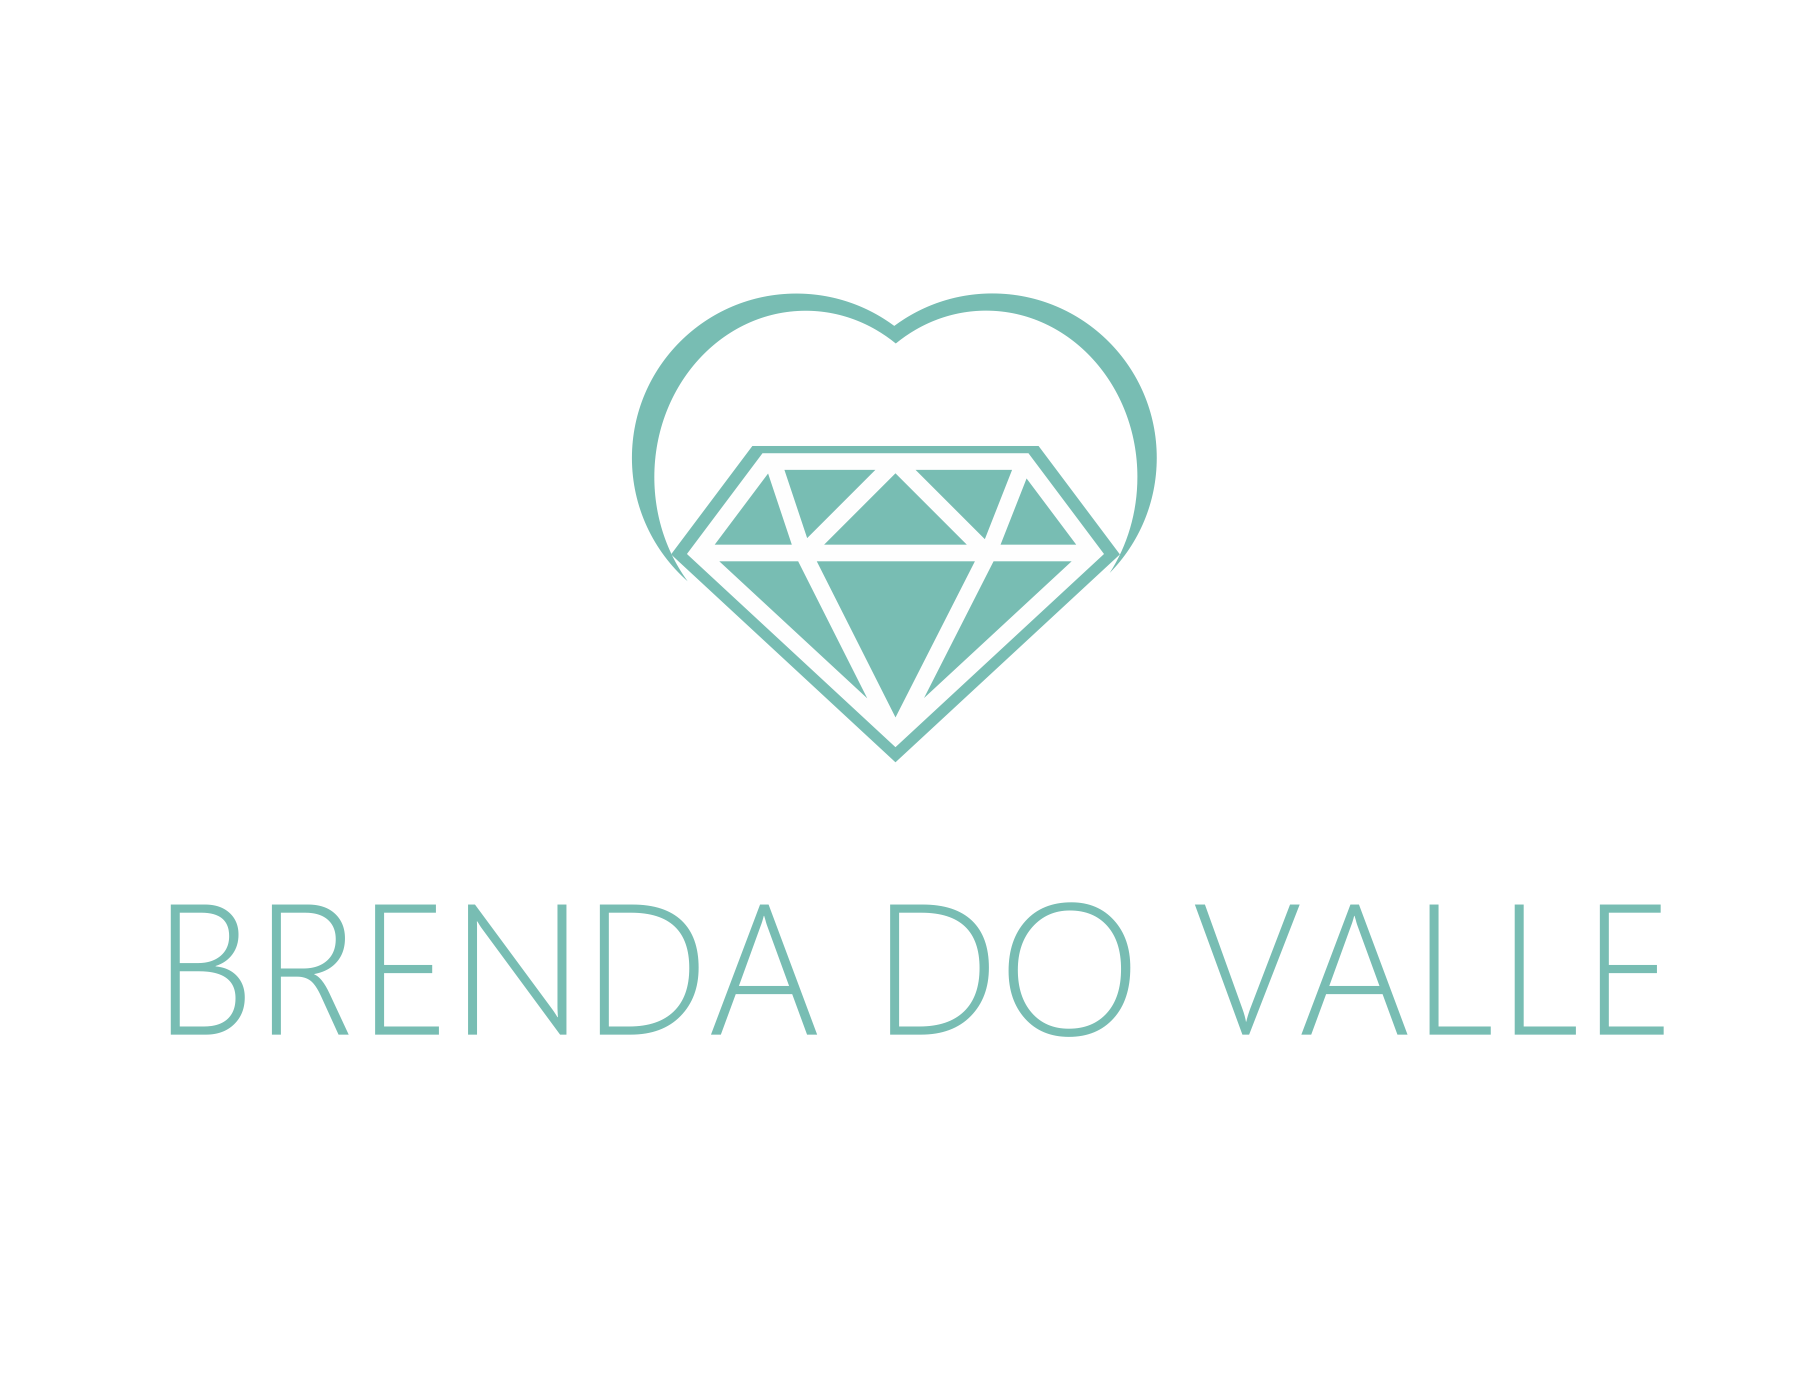 BRENDA DO VALLE SEMIJOIAS